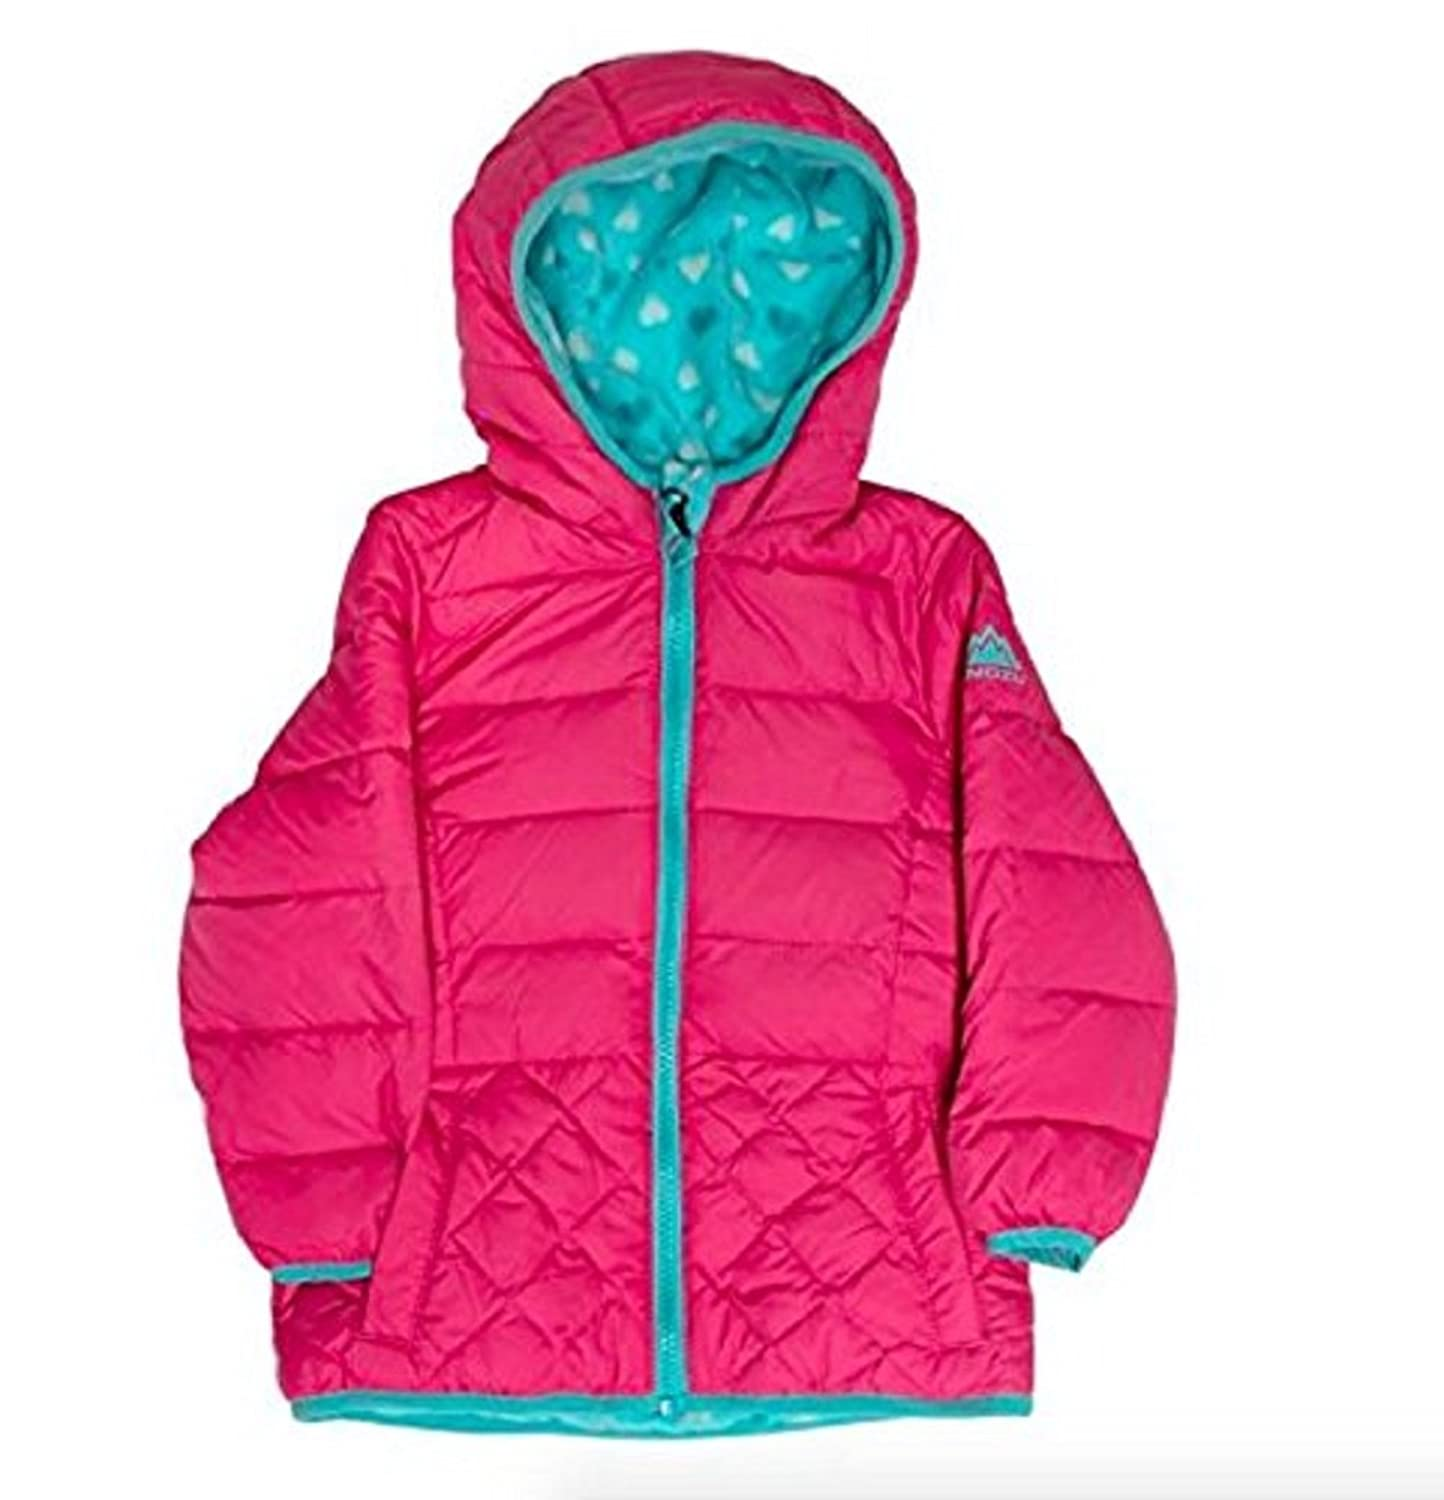 Amazon.com: Snozu Girls' Fleece Lined Down Jacket: Clothing